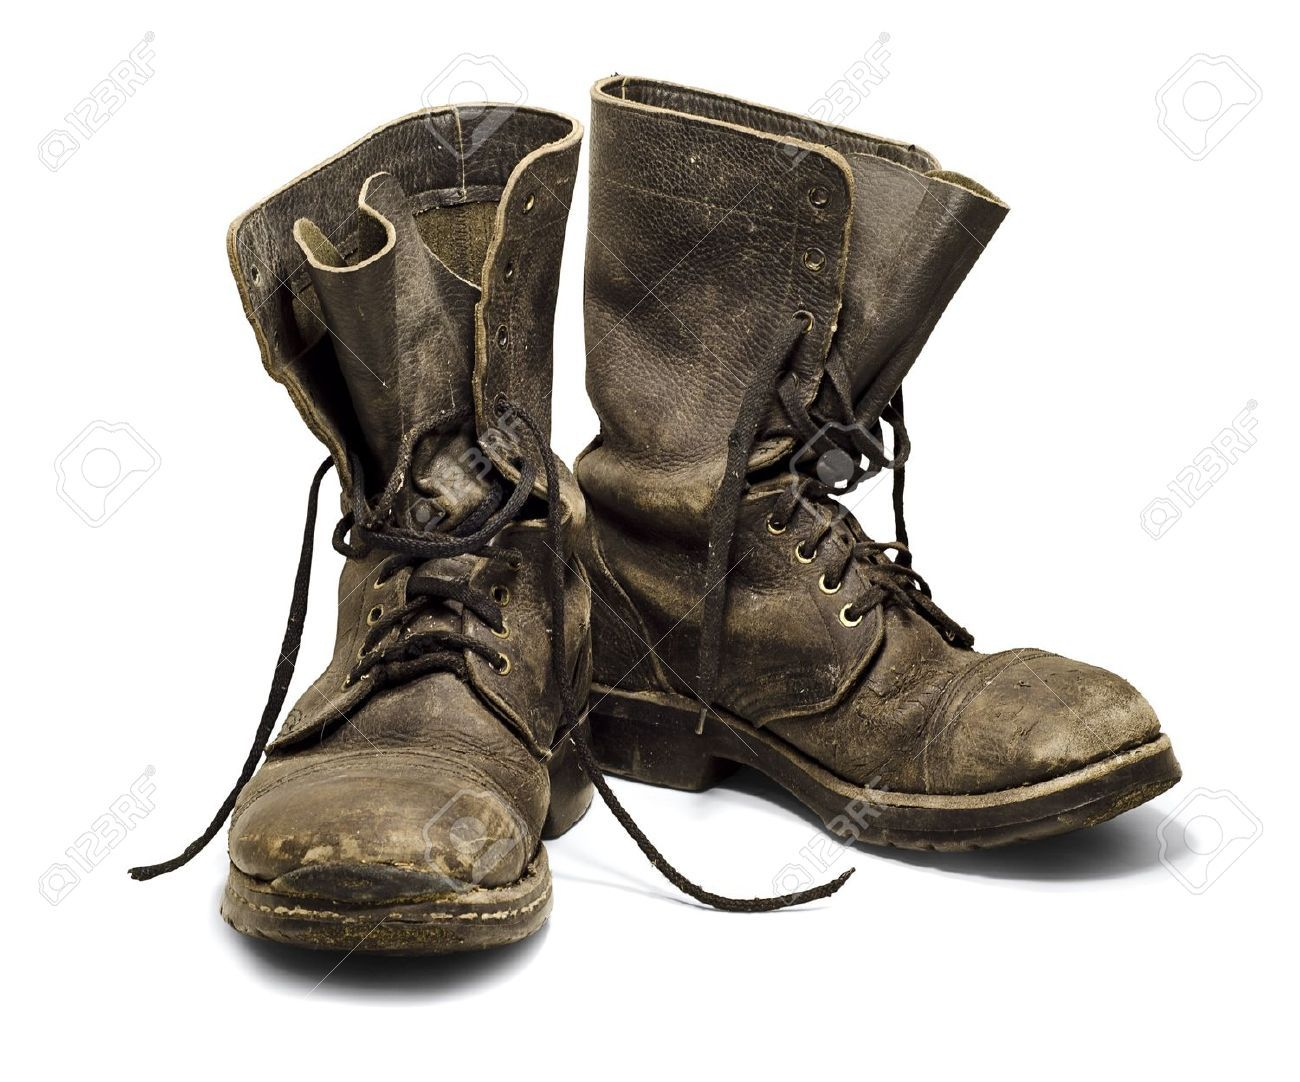 old combat boots - Google Search | / Cien Años de Soledad ...